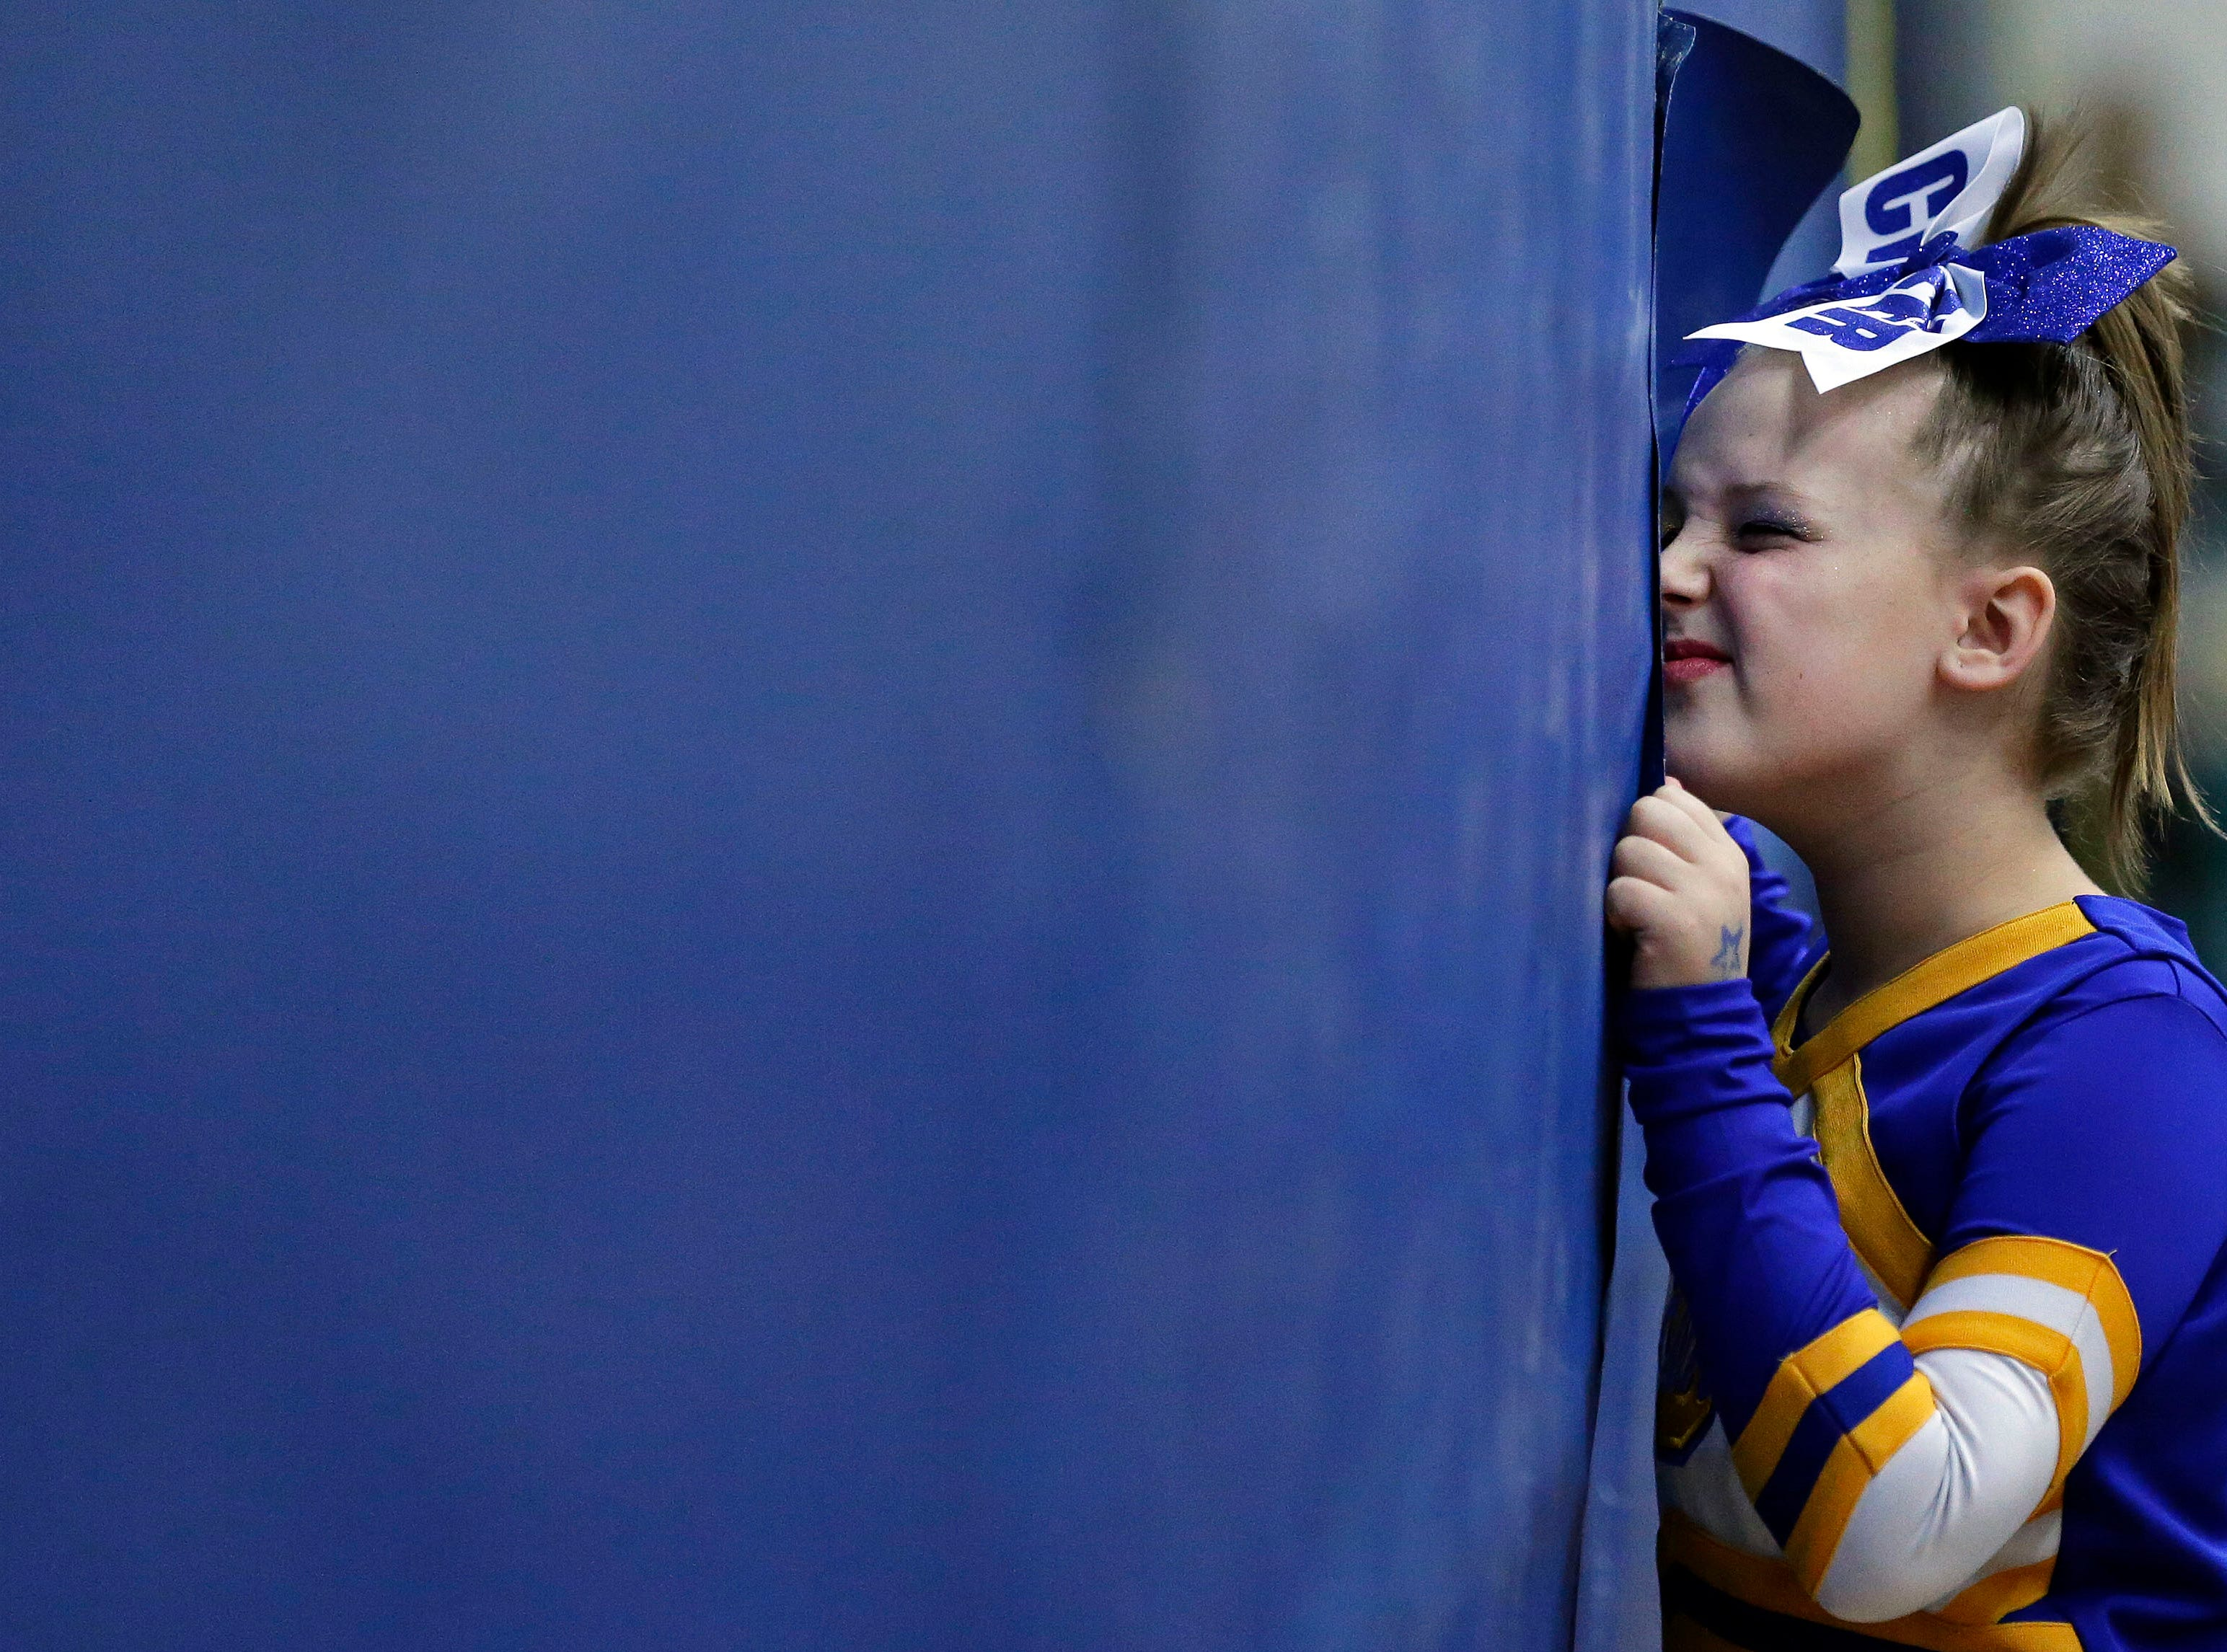 An Oconto Falls team member watches the competition as her team waits to warm-up as the Lightning Bolt Explosion Cheer and Dance competition takes place Saturday, January 5, 2019, at Appleton North High School in Appleton, Wis.Ron Page/USA TODAY NETWORK-Wisconsin